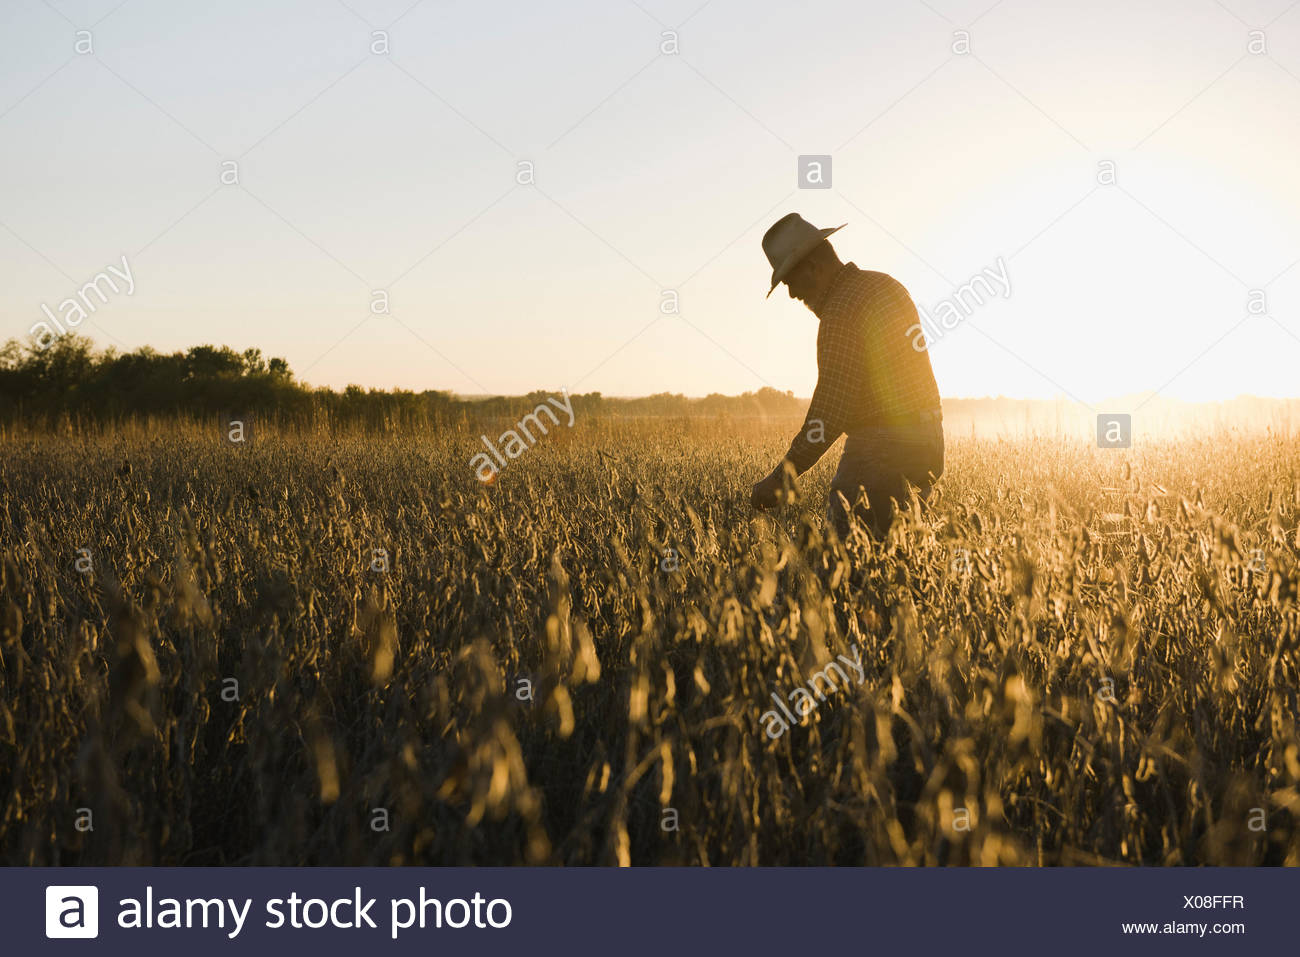 Silhouetted senior male farmer looking at soybean crop at sunset, Plattsburg, Missouri, USA - Stock Image